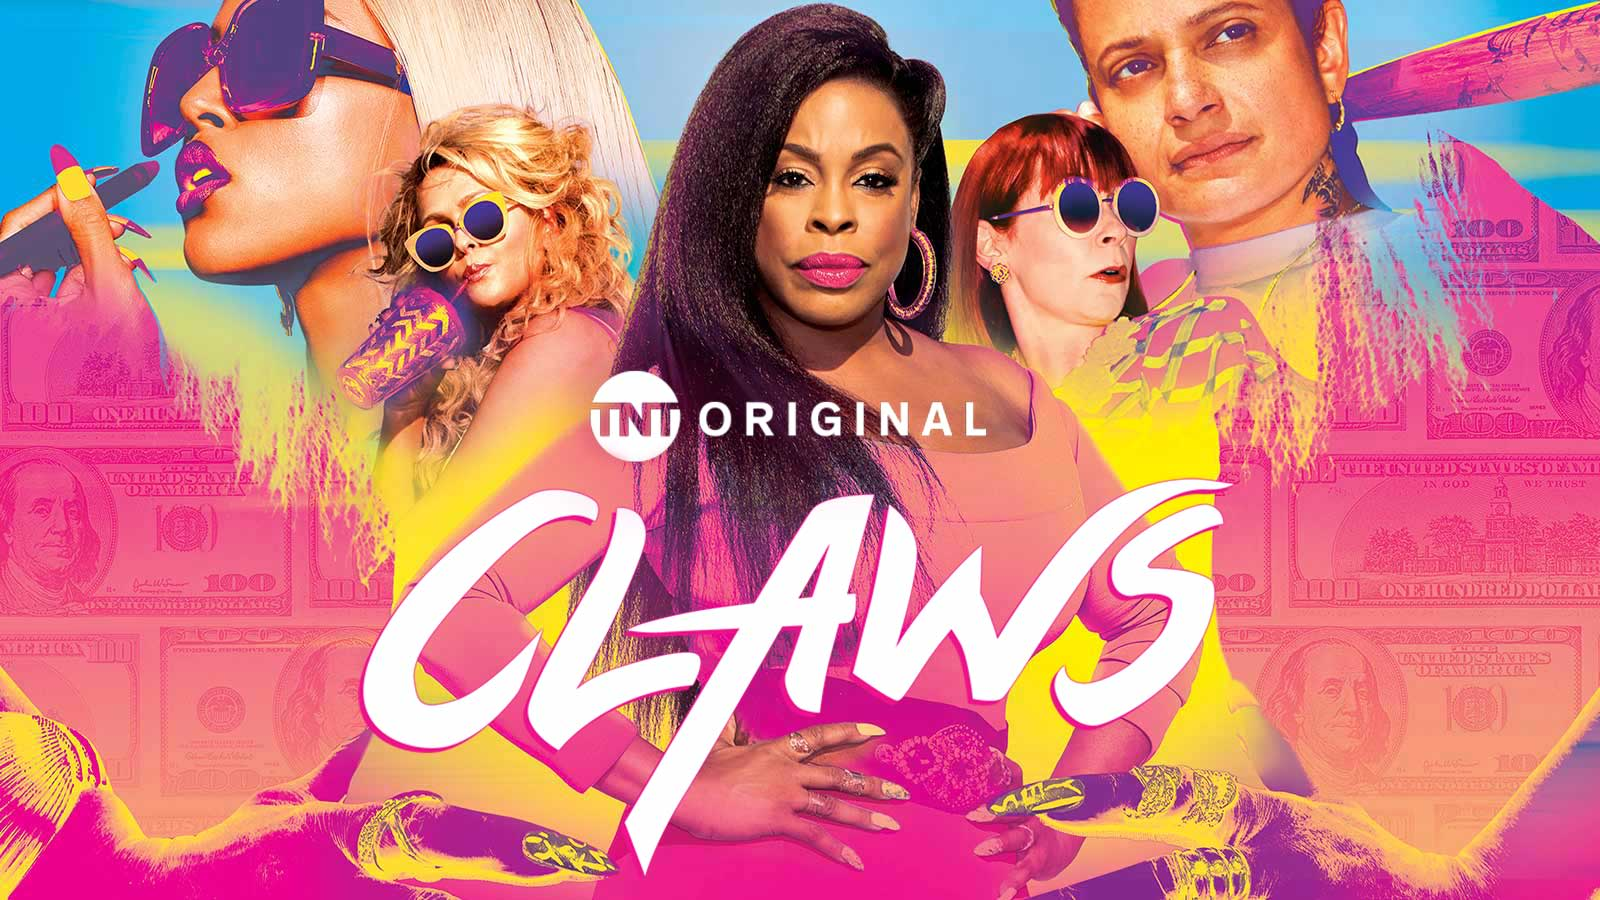 Claws Season 3 Episode 1